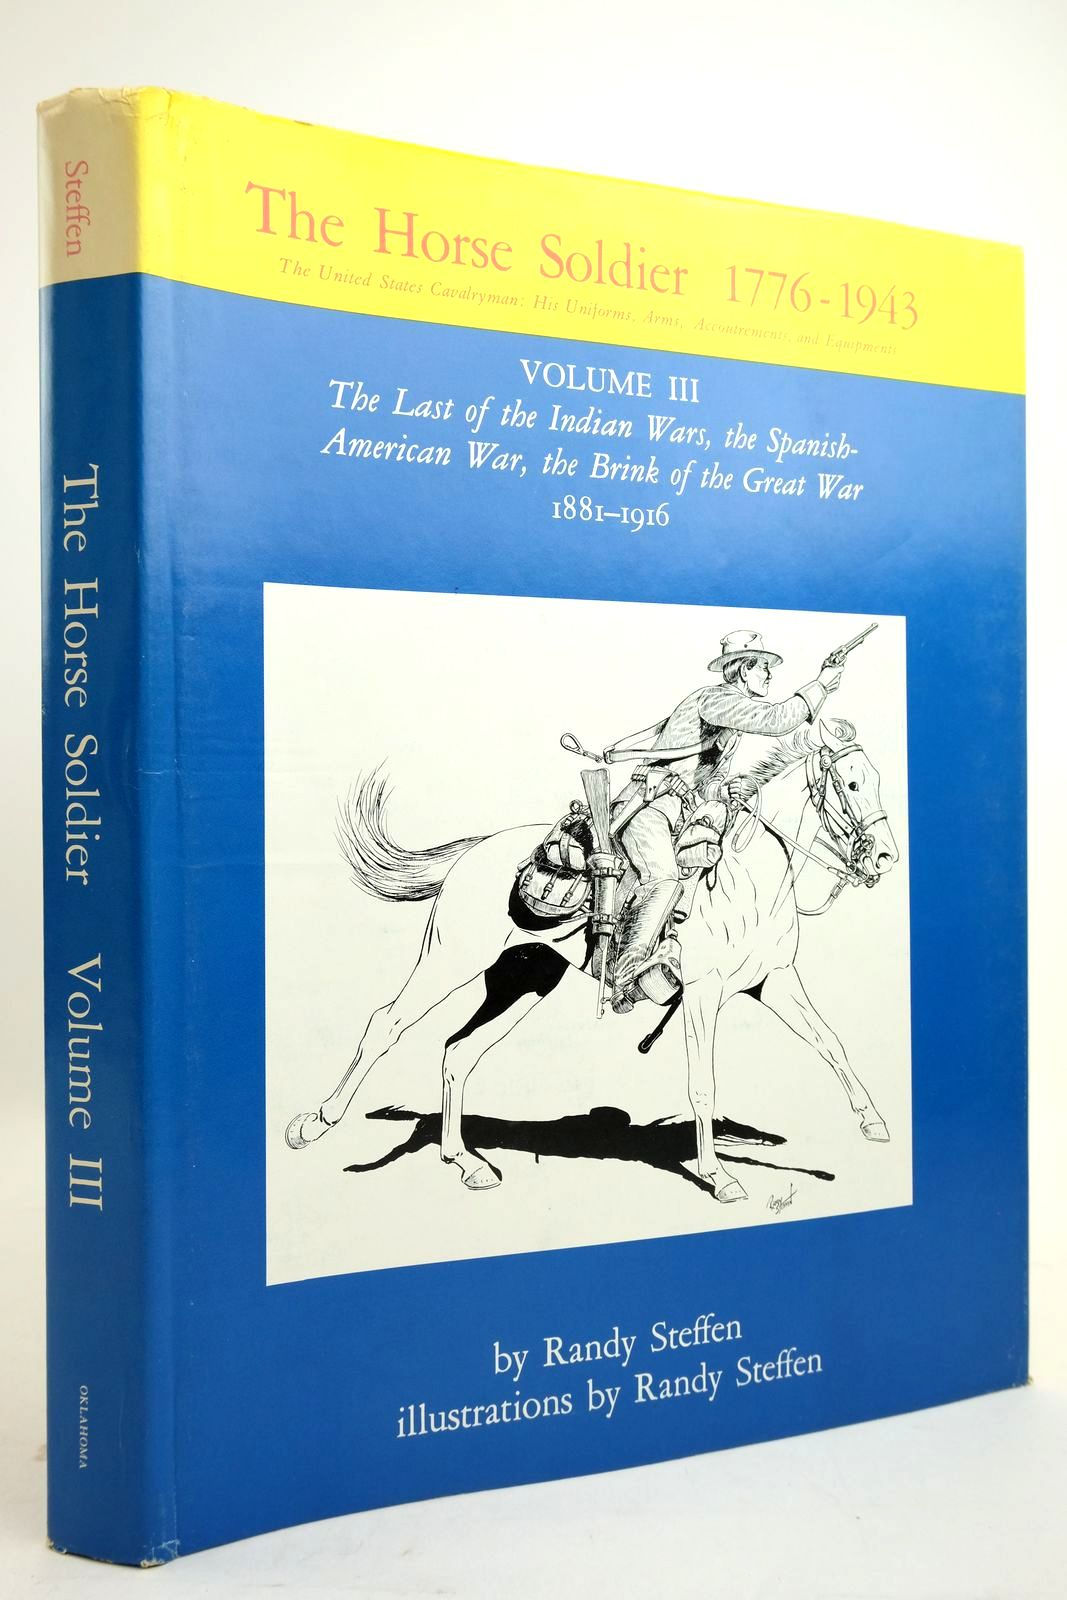 Photo of THE HORSE SOLDIER 1776-1943: VOLUME III: THE LAST OF THE INDIAN WARS, THE SPANISH-AMERICAN WAR, THE BRINK OF THE GREAT WAR 1881-1916 written by Steffen, Randy illustrated by Steffen, Randy published by University of Oklahoma Press (STOCK CODE: 2134515)  for sale by Stella & Rose's Books